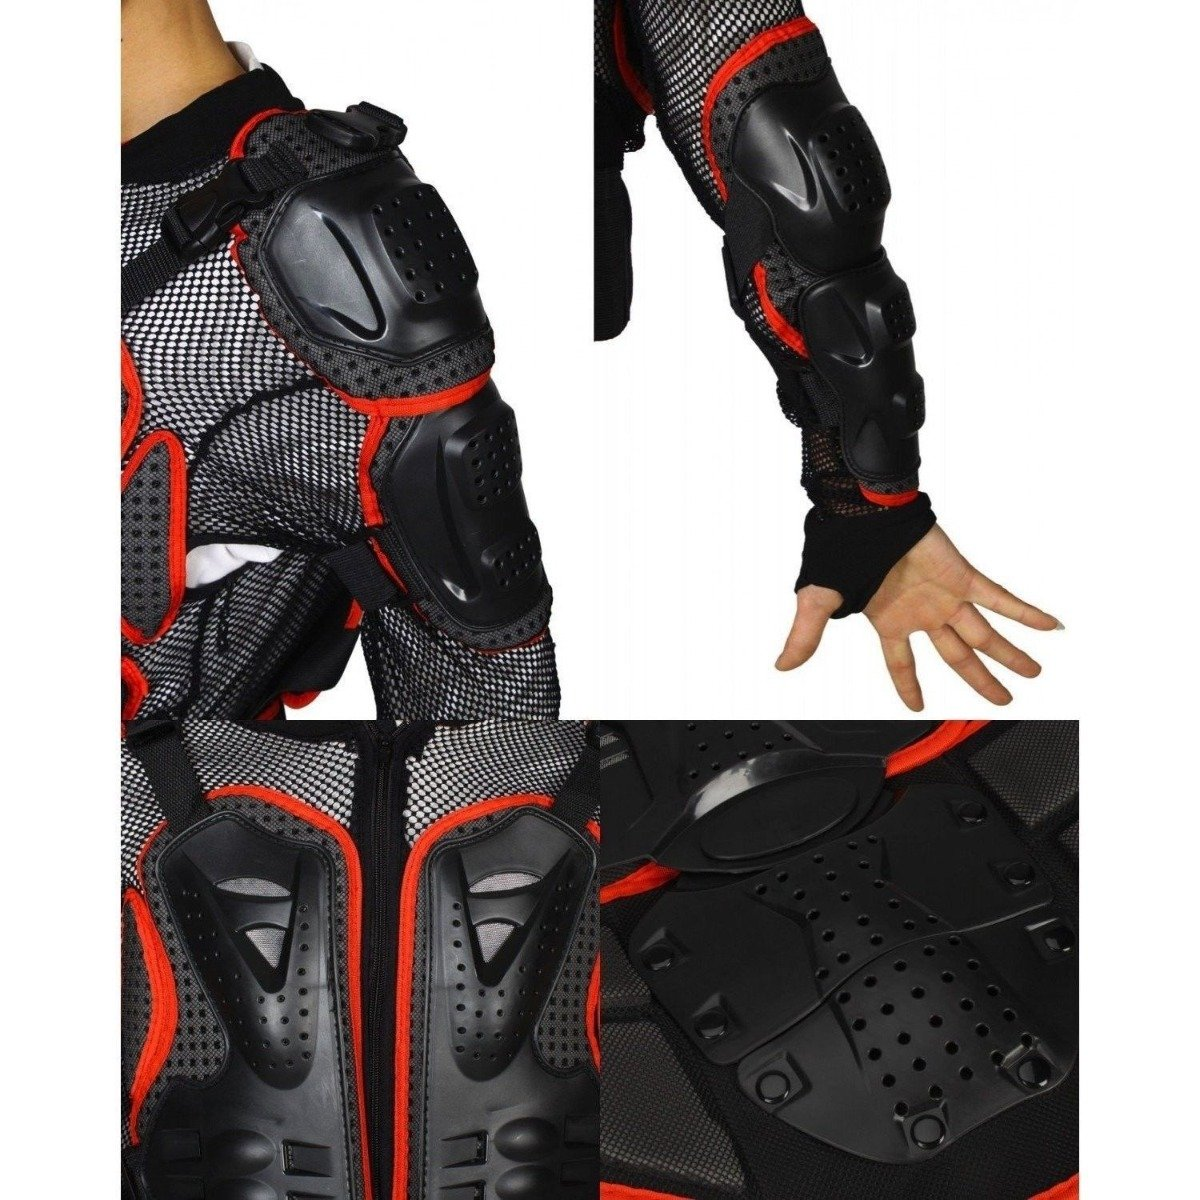 Motorcycle Accessories Racing Red Full Body Spine Chest Protective Clothing Motorcross Jacket Gear Armor Off Road Protector Size M For Motorbike Standard Sport ATV Quad Dirt Bike Car